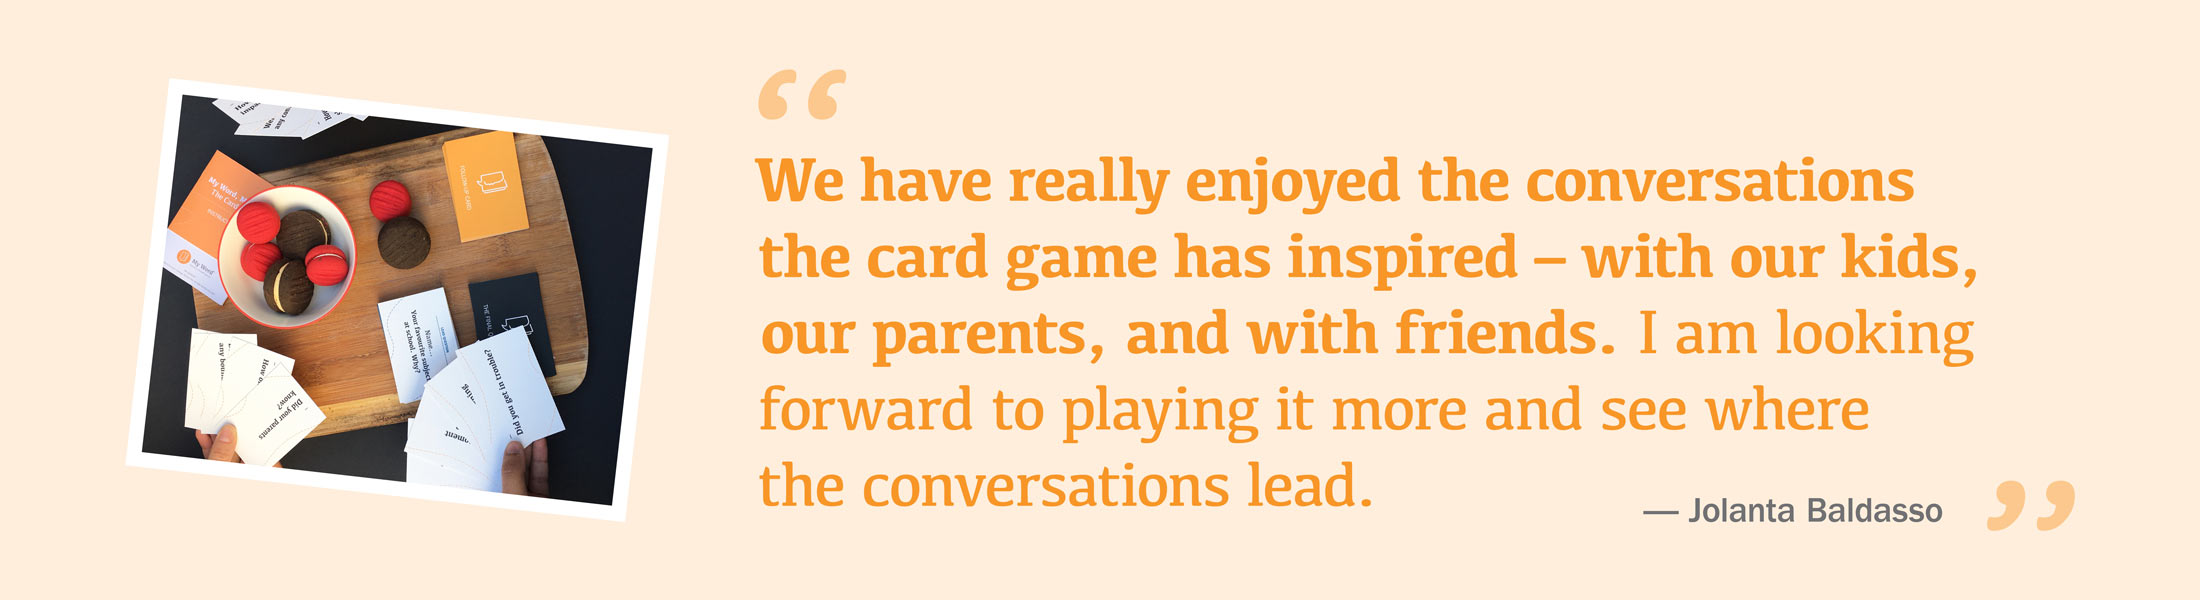 my word my story card game testimonial conversations